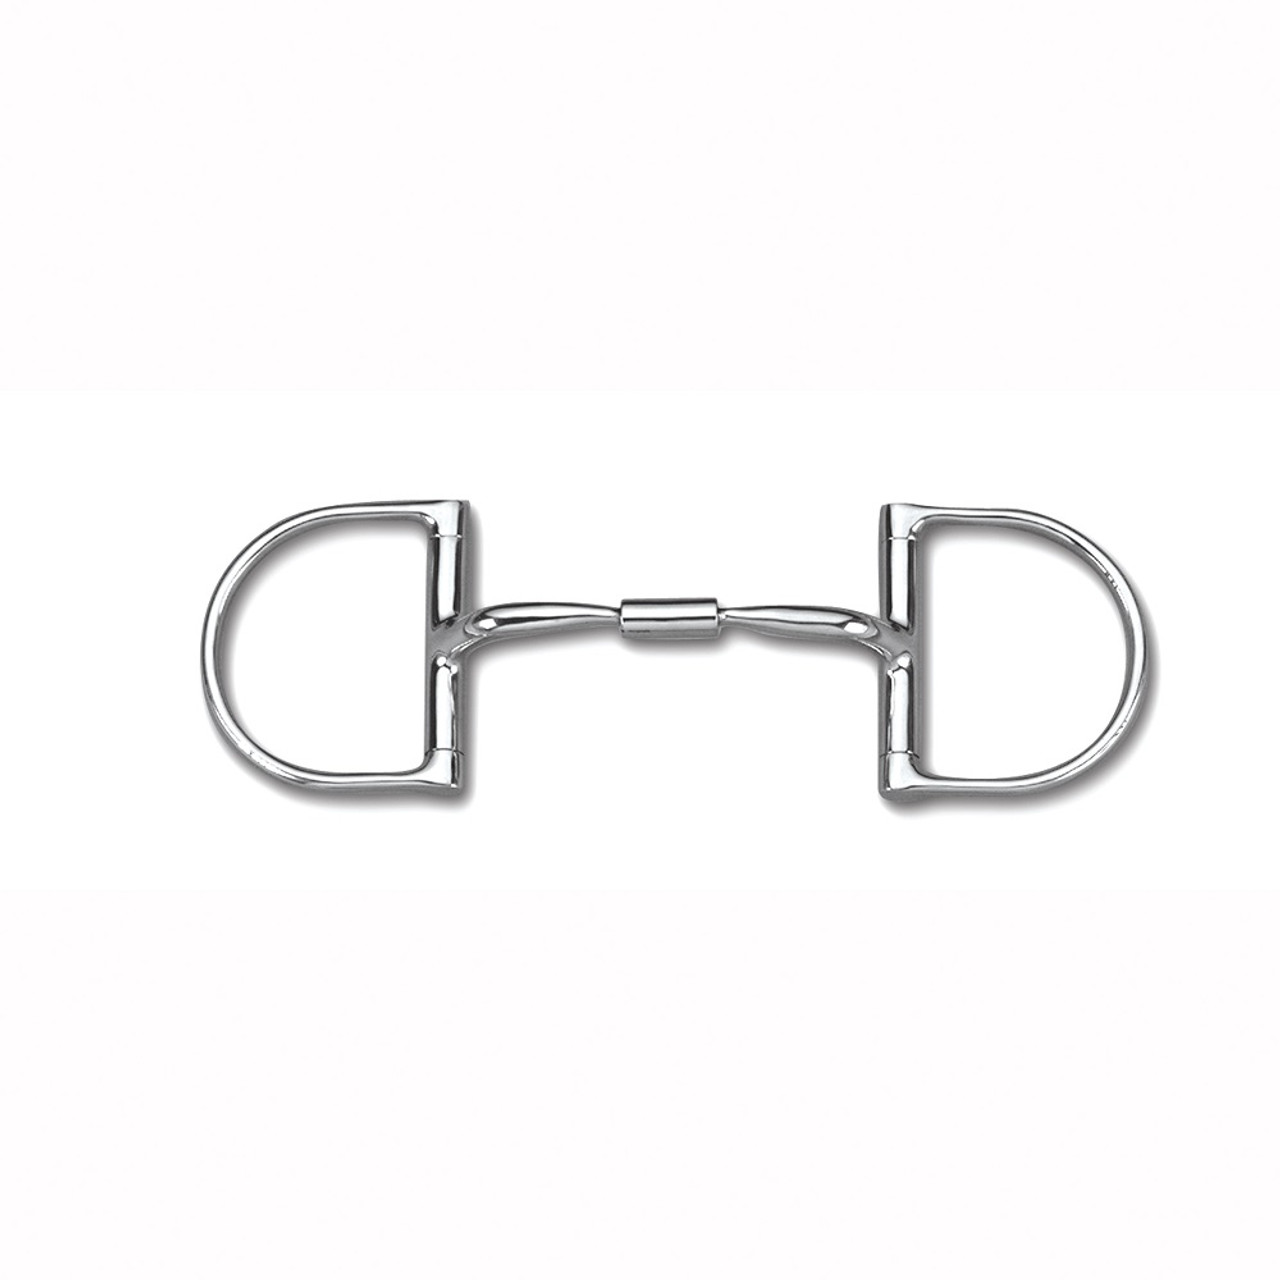 Myler Eggbutt Without Hooks with Stainless Steel French Link Snaffle